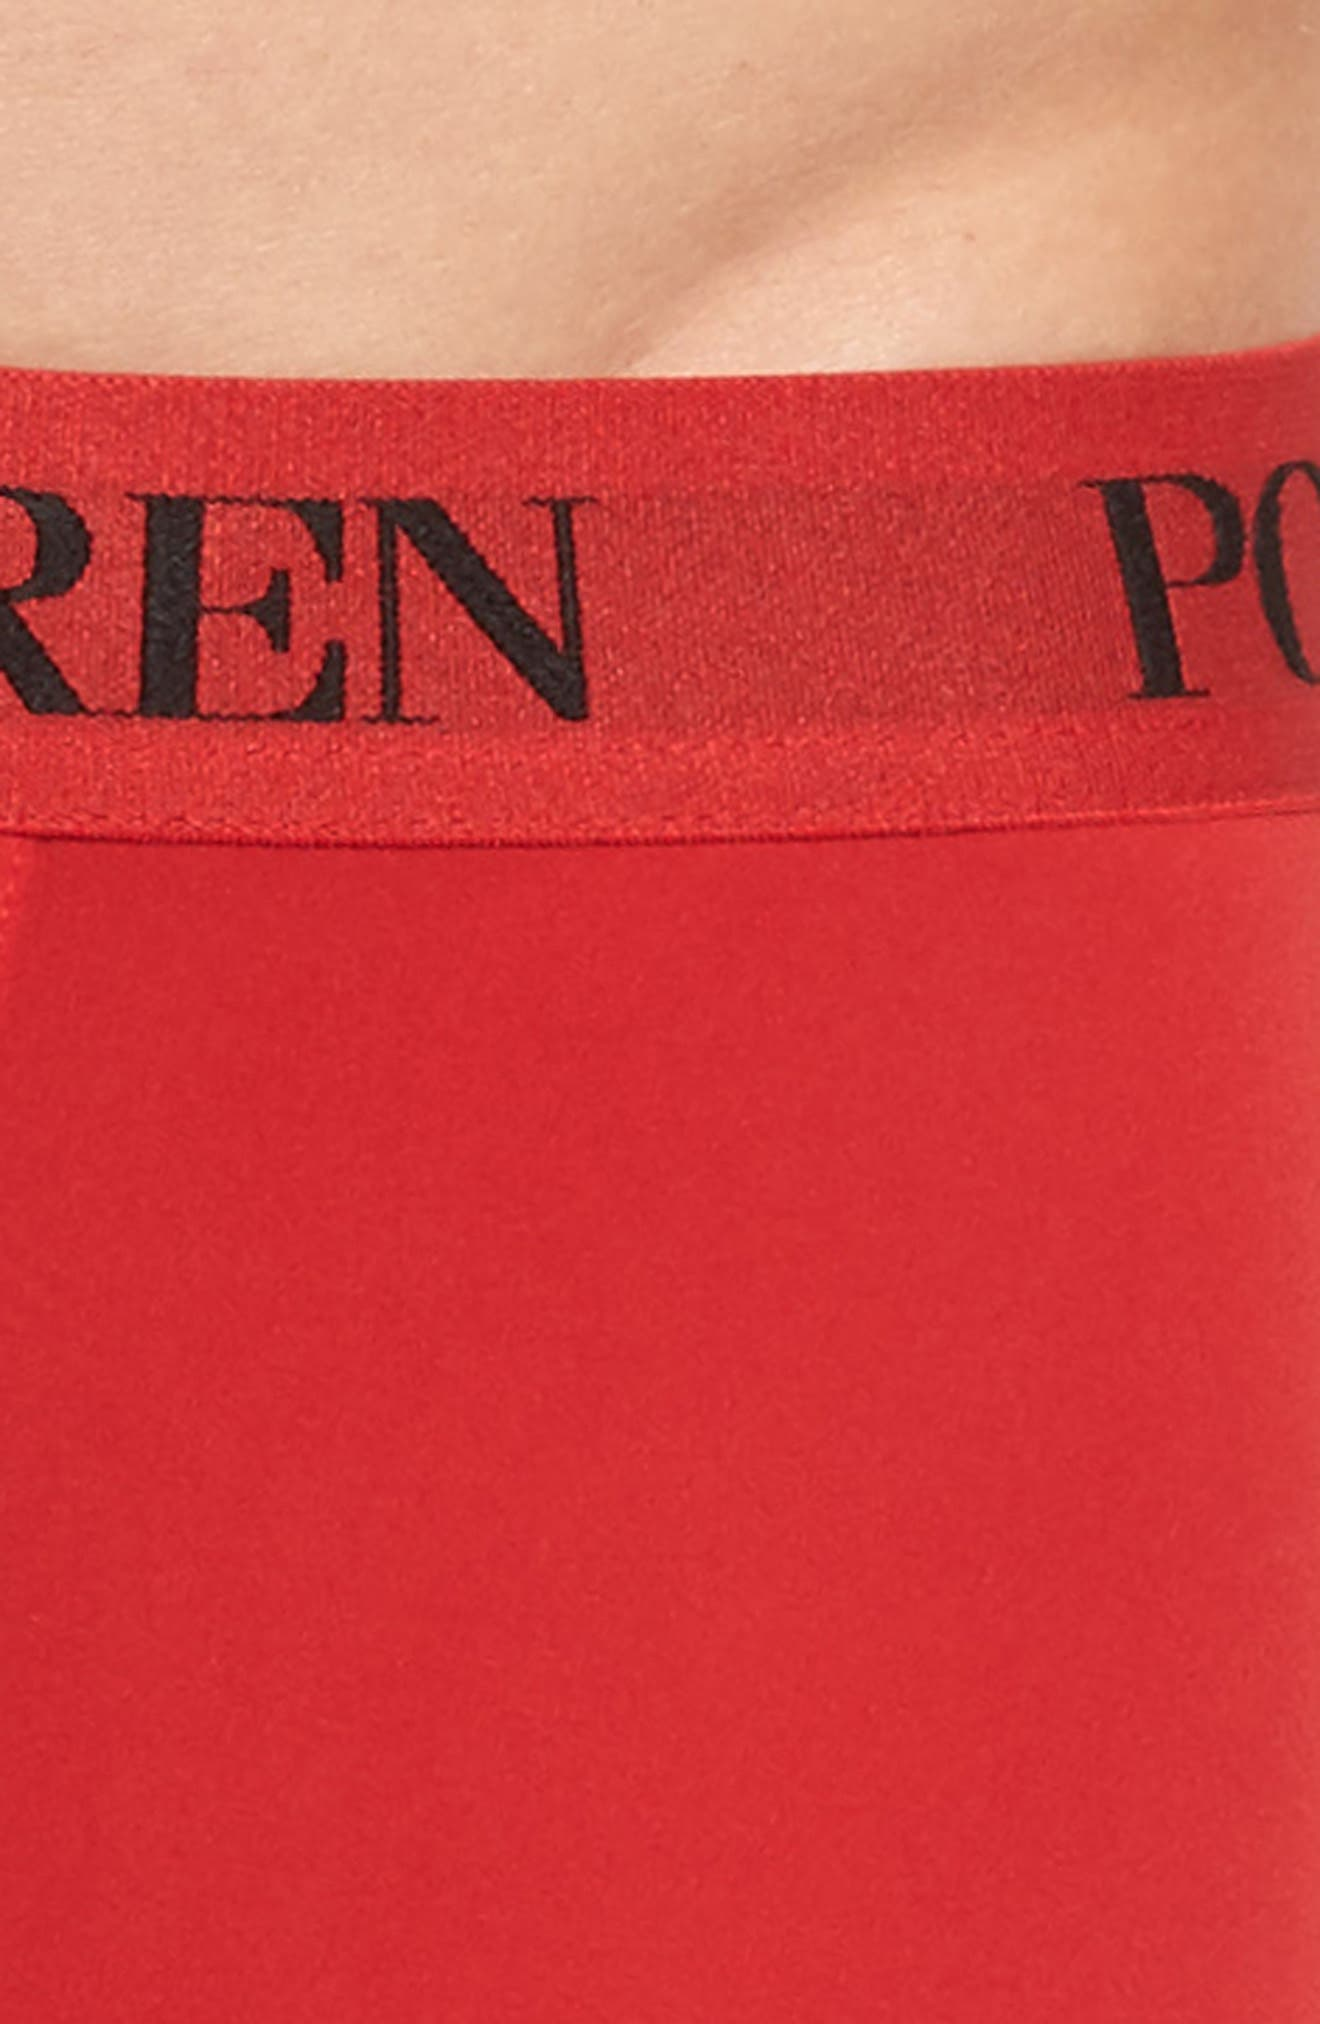 Microfiber Boxer Briefs,                             Alternate thumbnail 4, color,                             Rl2000 Red/ Polo Black